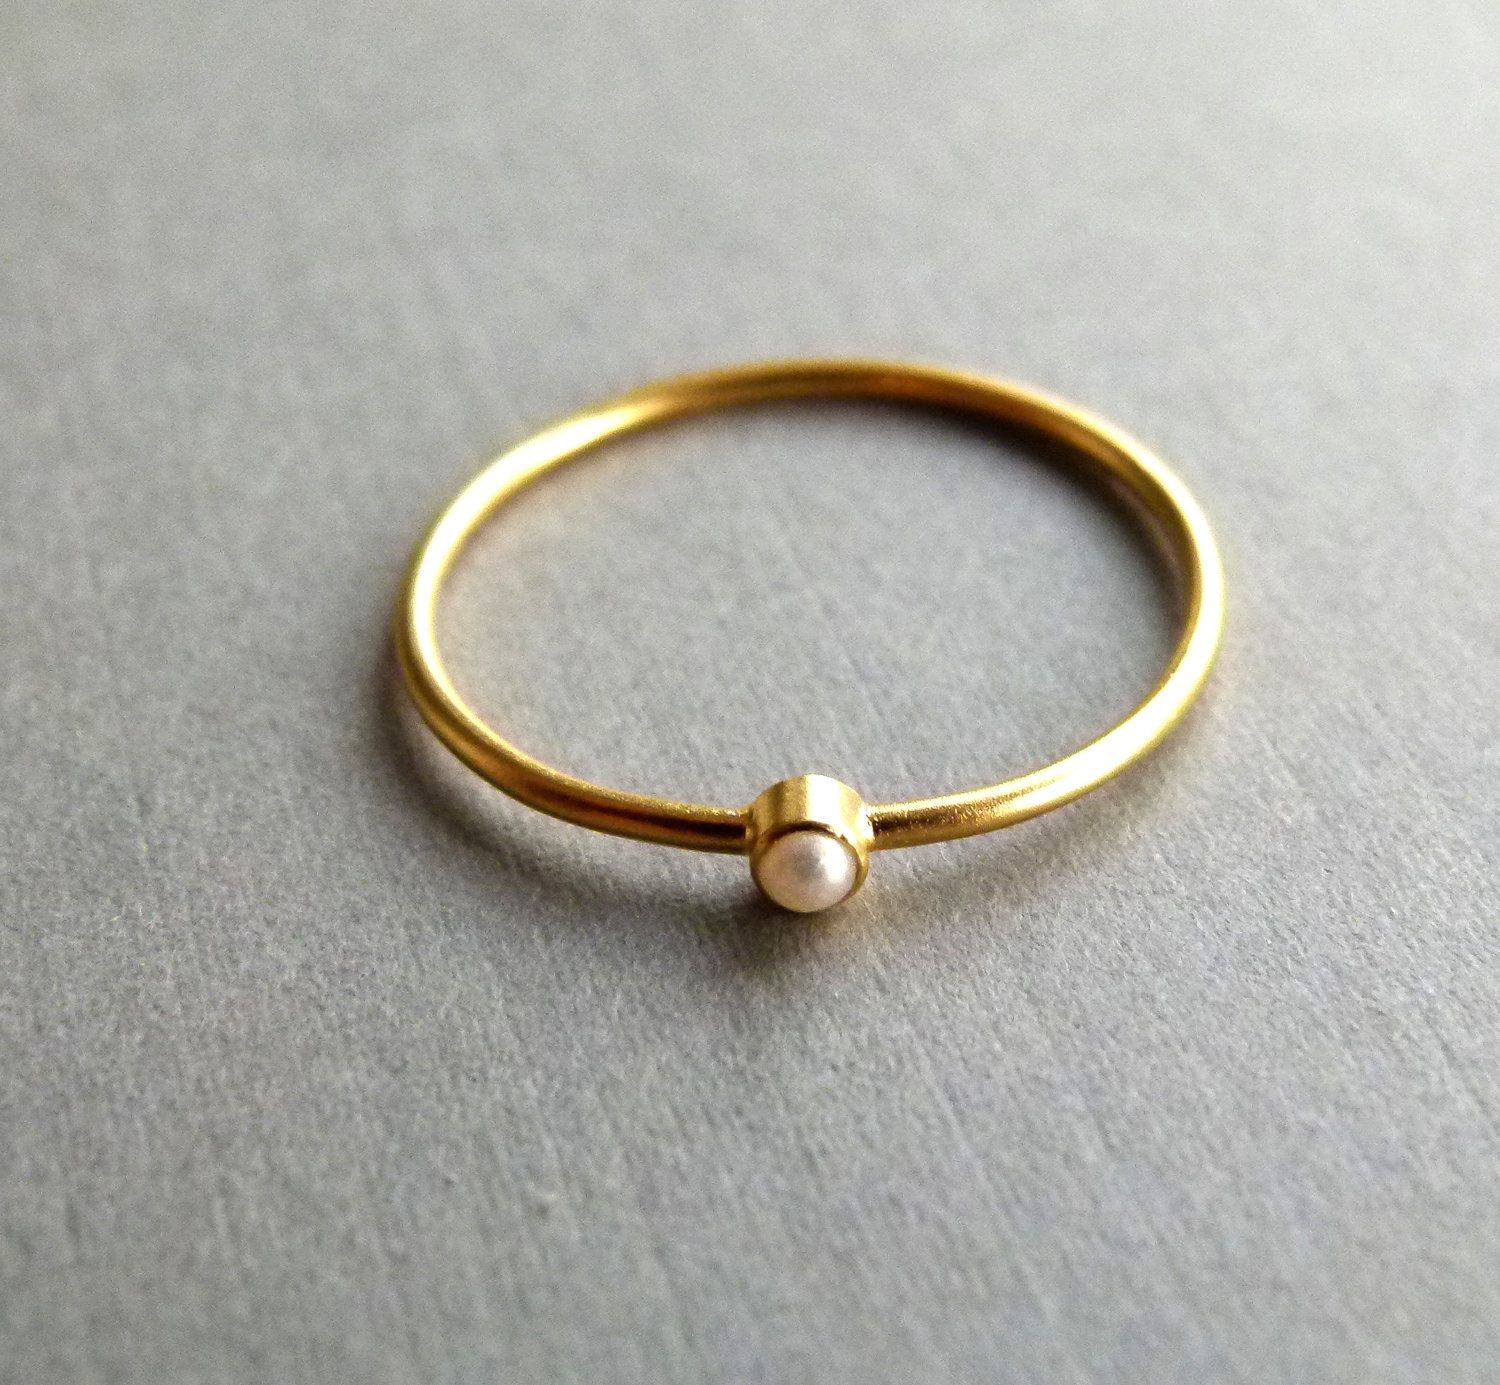 on bands gold ring wearing hands rings for or groom thin bee ideas wedding weddceremycom bride engagement thick band u